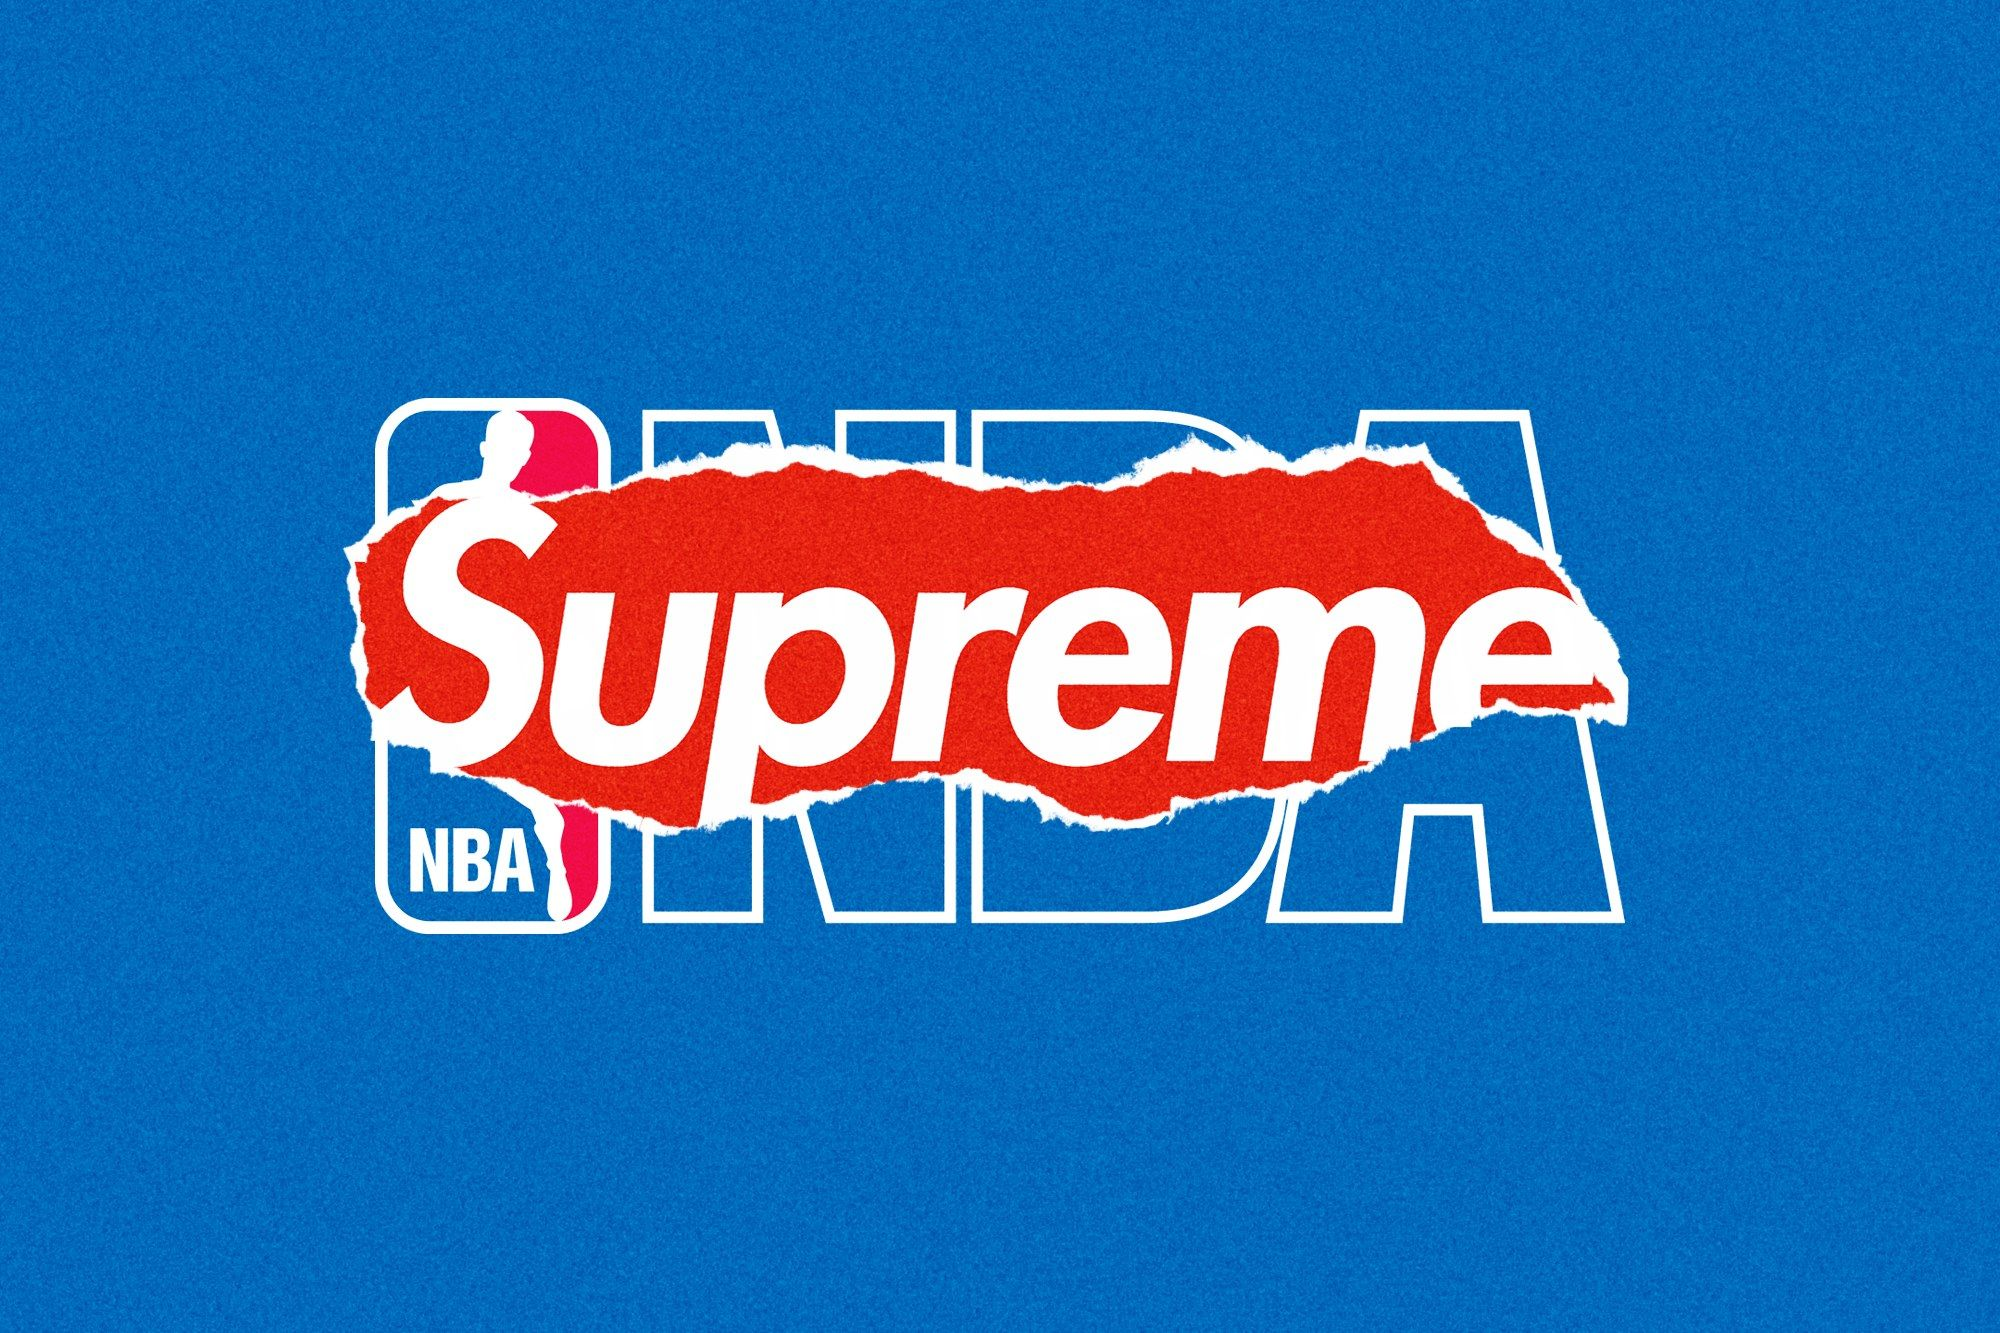 Supreme Logo - NBA Tells J.R. Smith to Cover Up His Supreme Tattoo Or Else | GQ